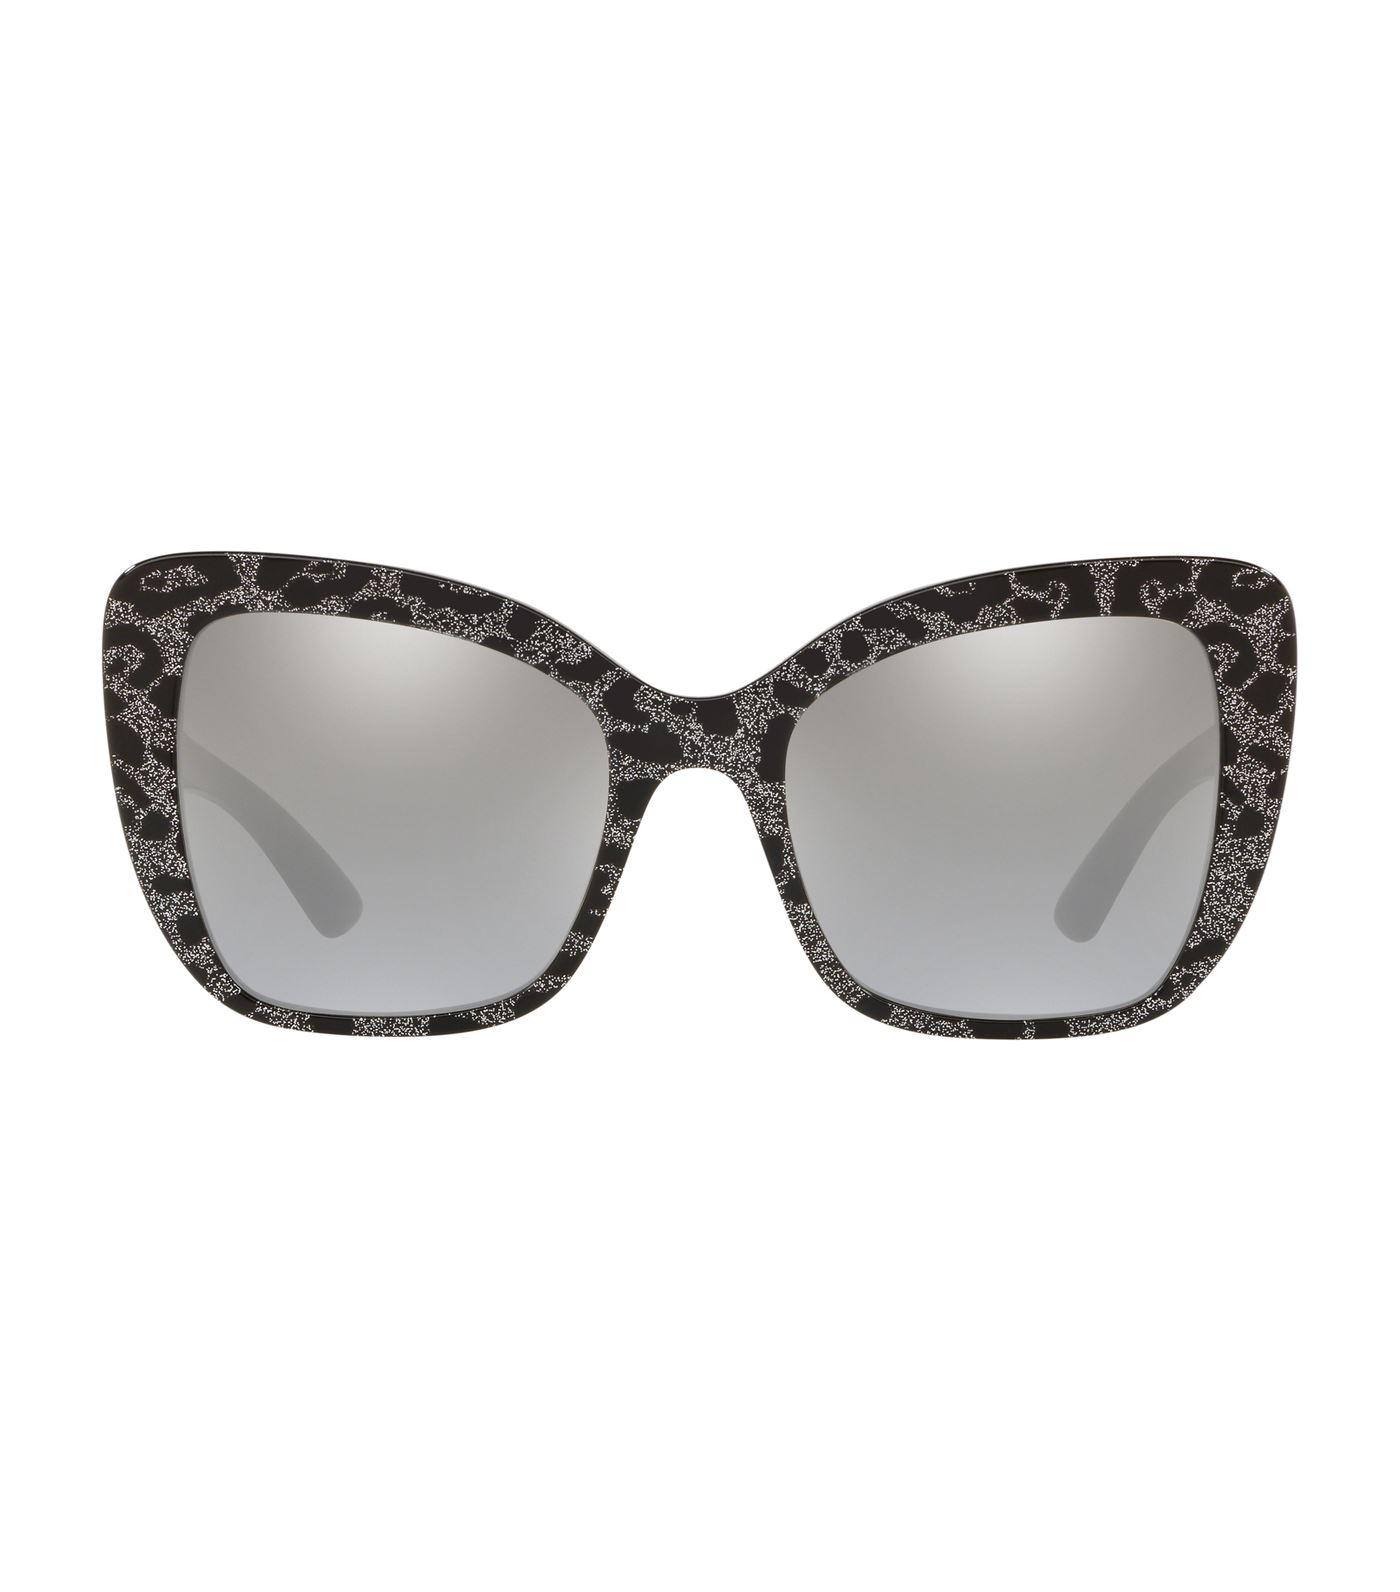 feb7c139941e Dolce & Gabbana Leopard Print Butterfly Sunglasses in Black - Lyst